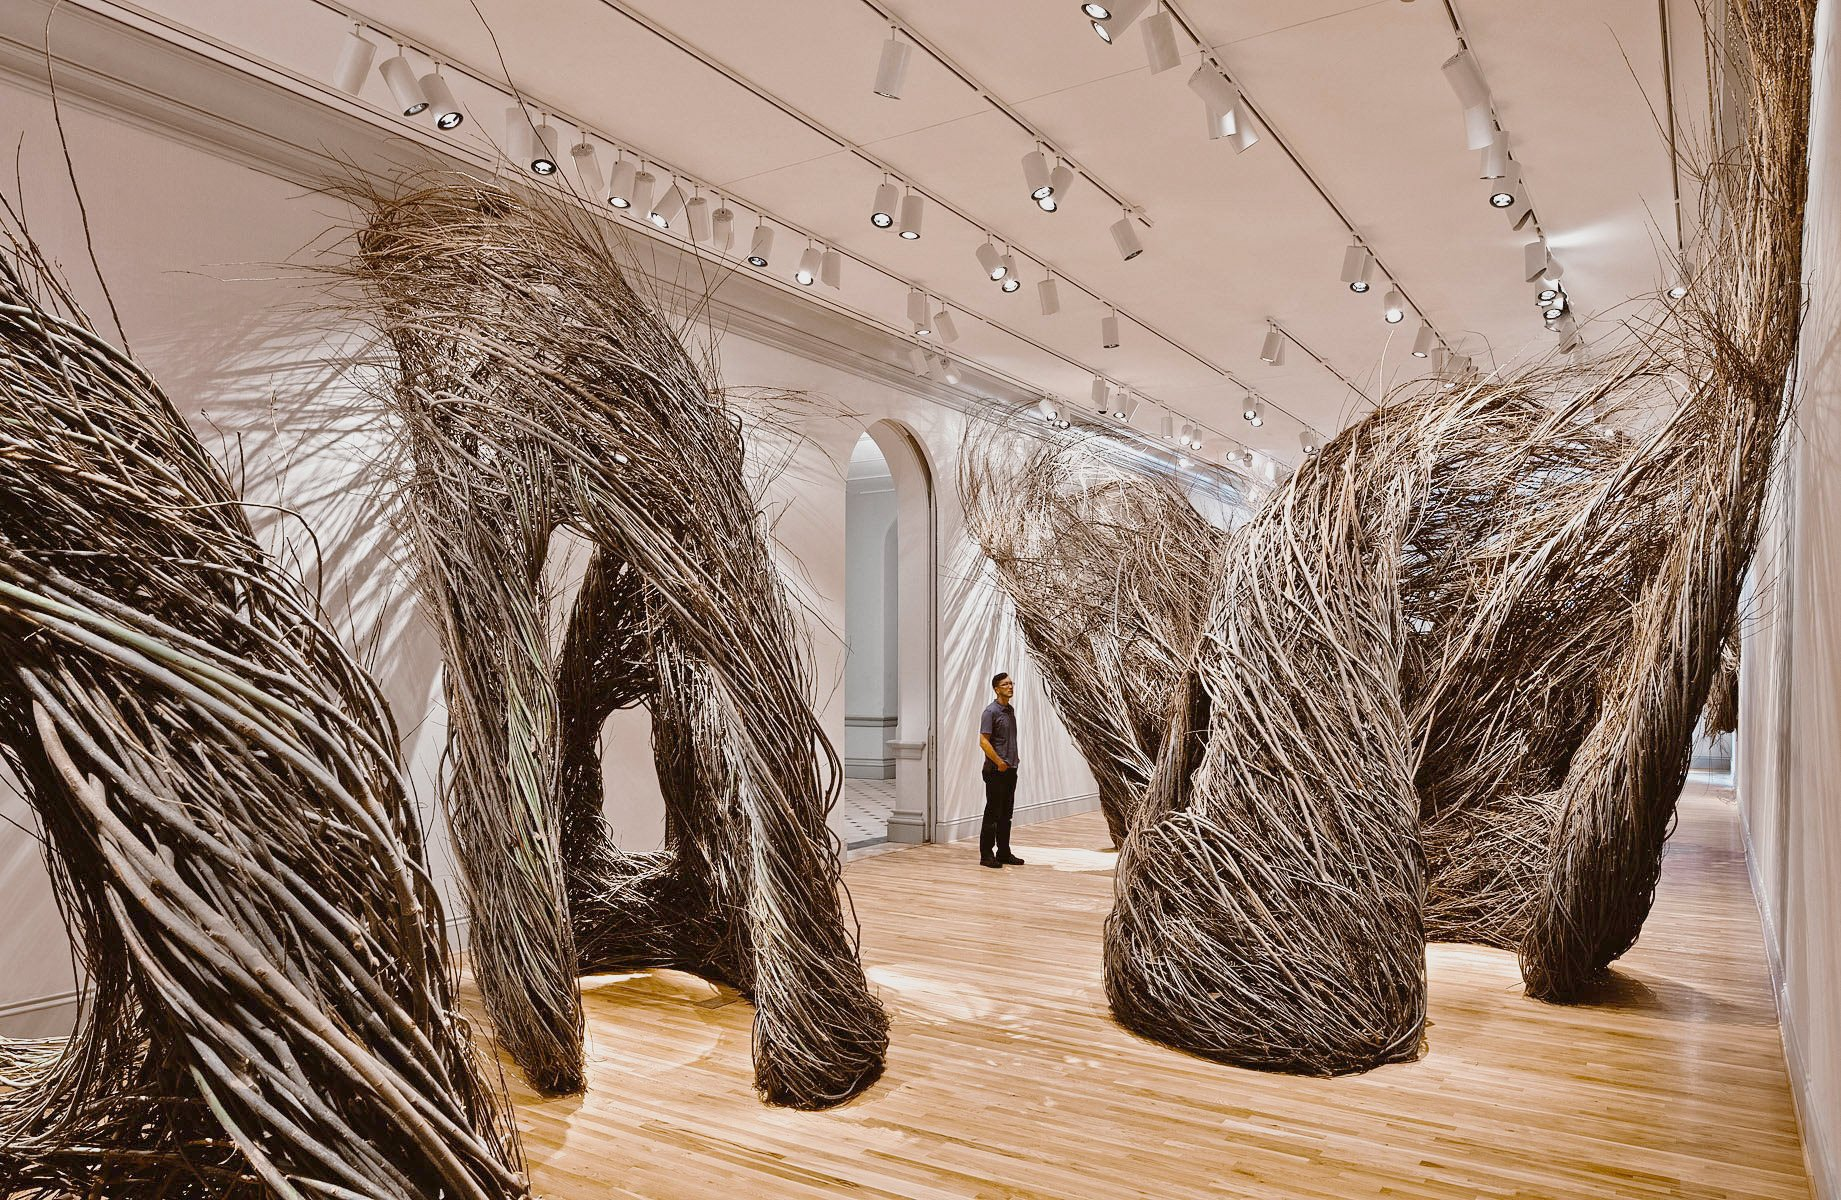 Patrick Dougherty: Shindig, exhibited at the Smithsonian (2015)